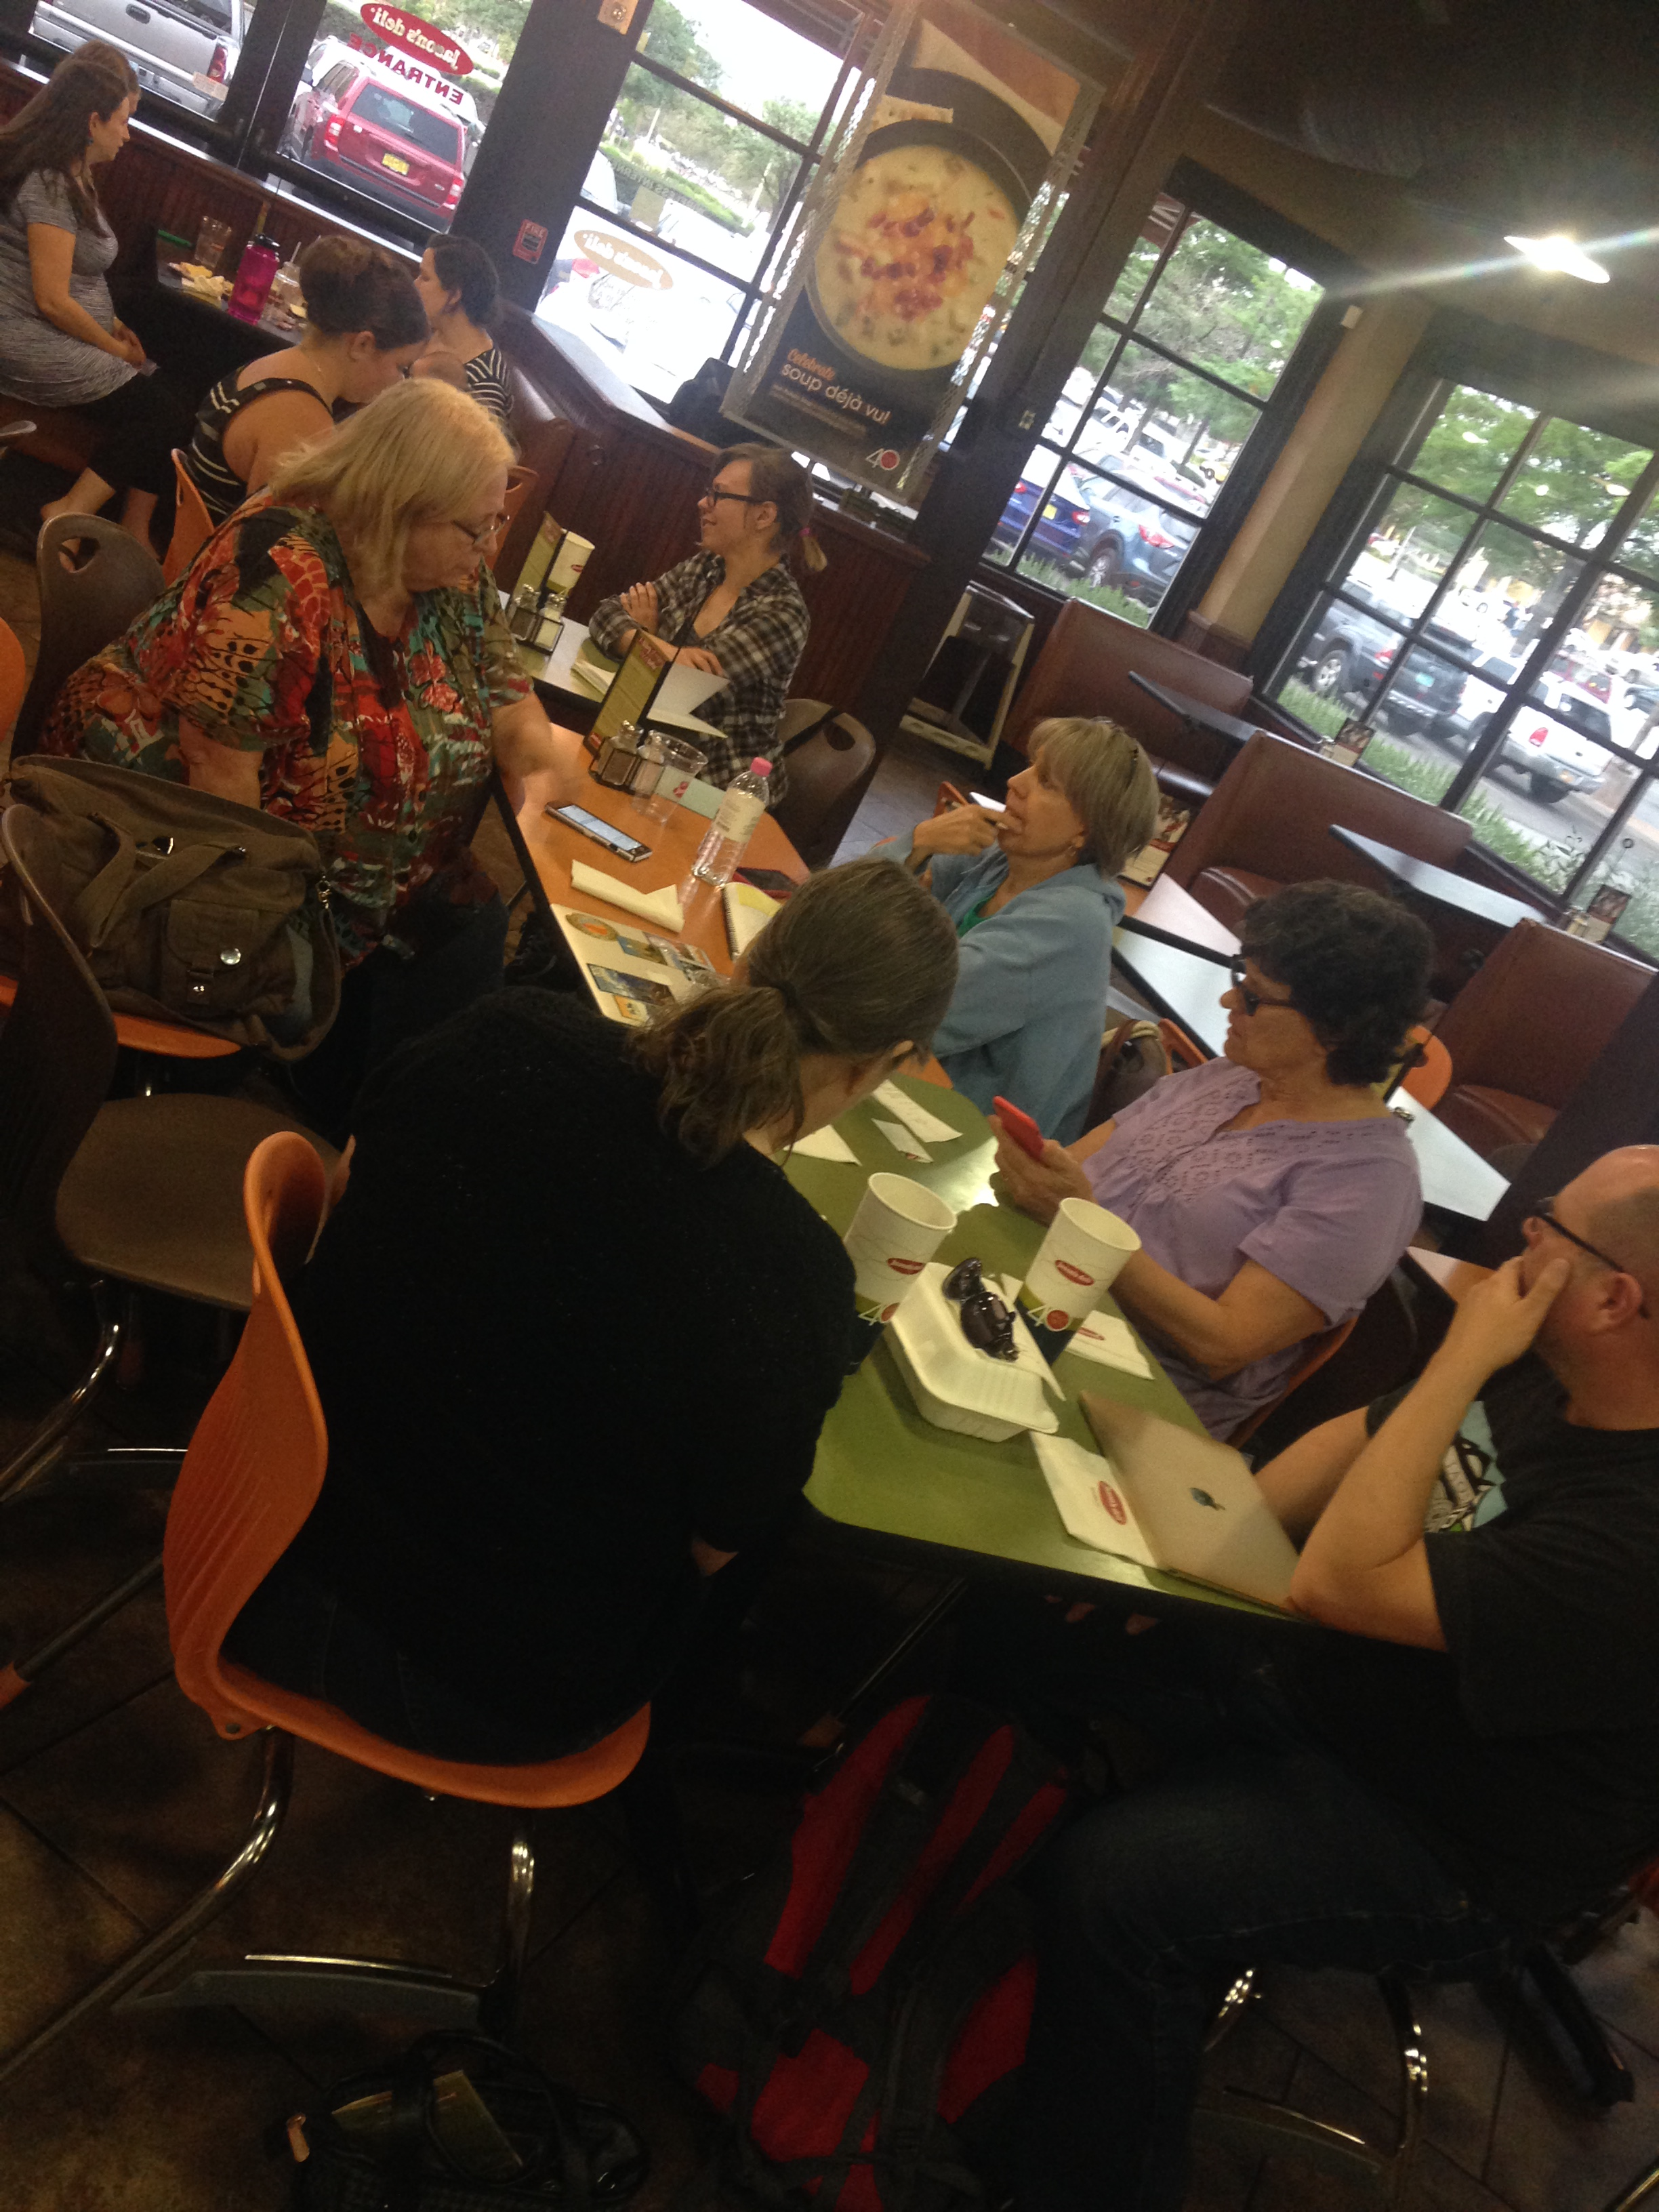 Women Working with WordPress at Jason's Deli